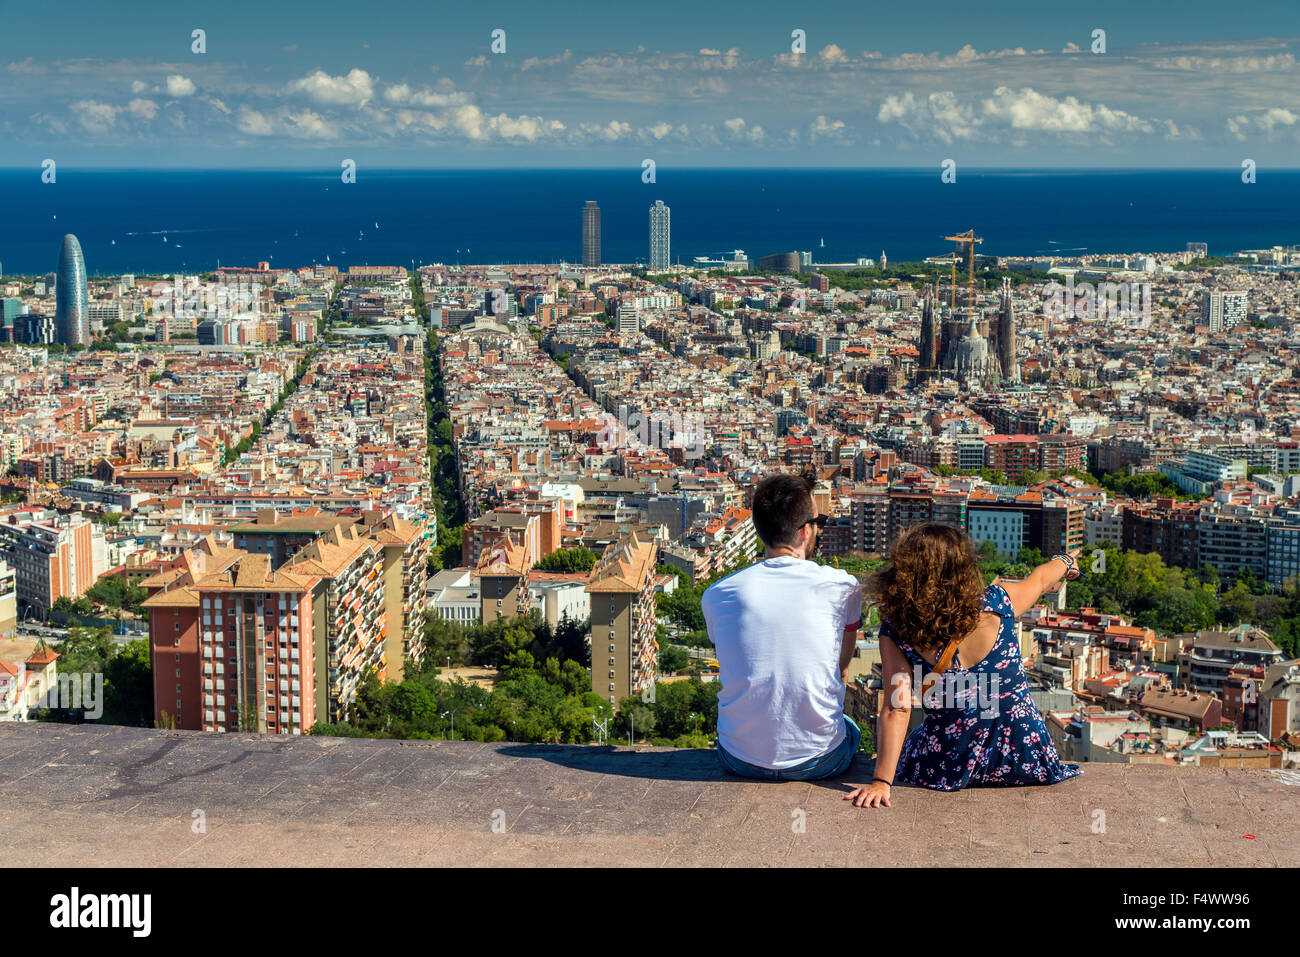 Tourists watching the city skyline, Barcelona, Catalonia, Spain - Stock Image